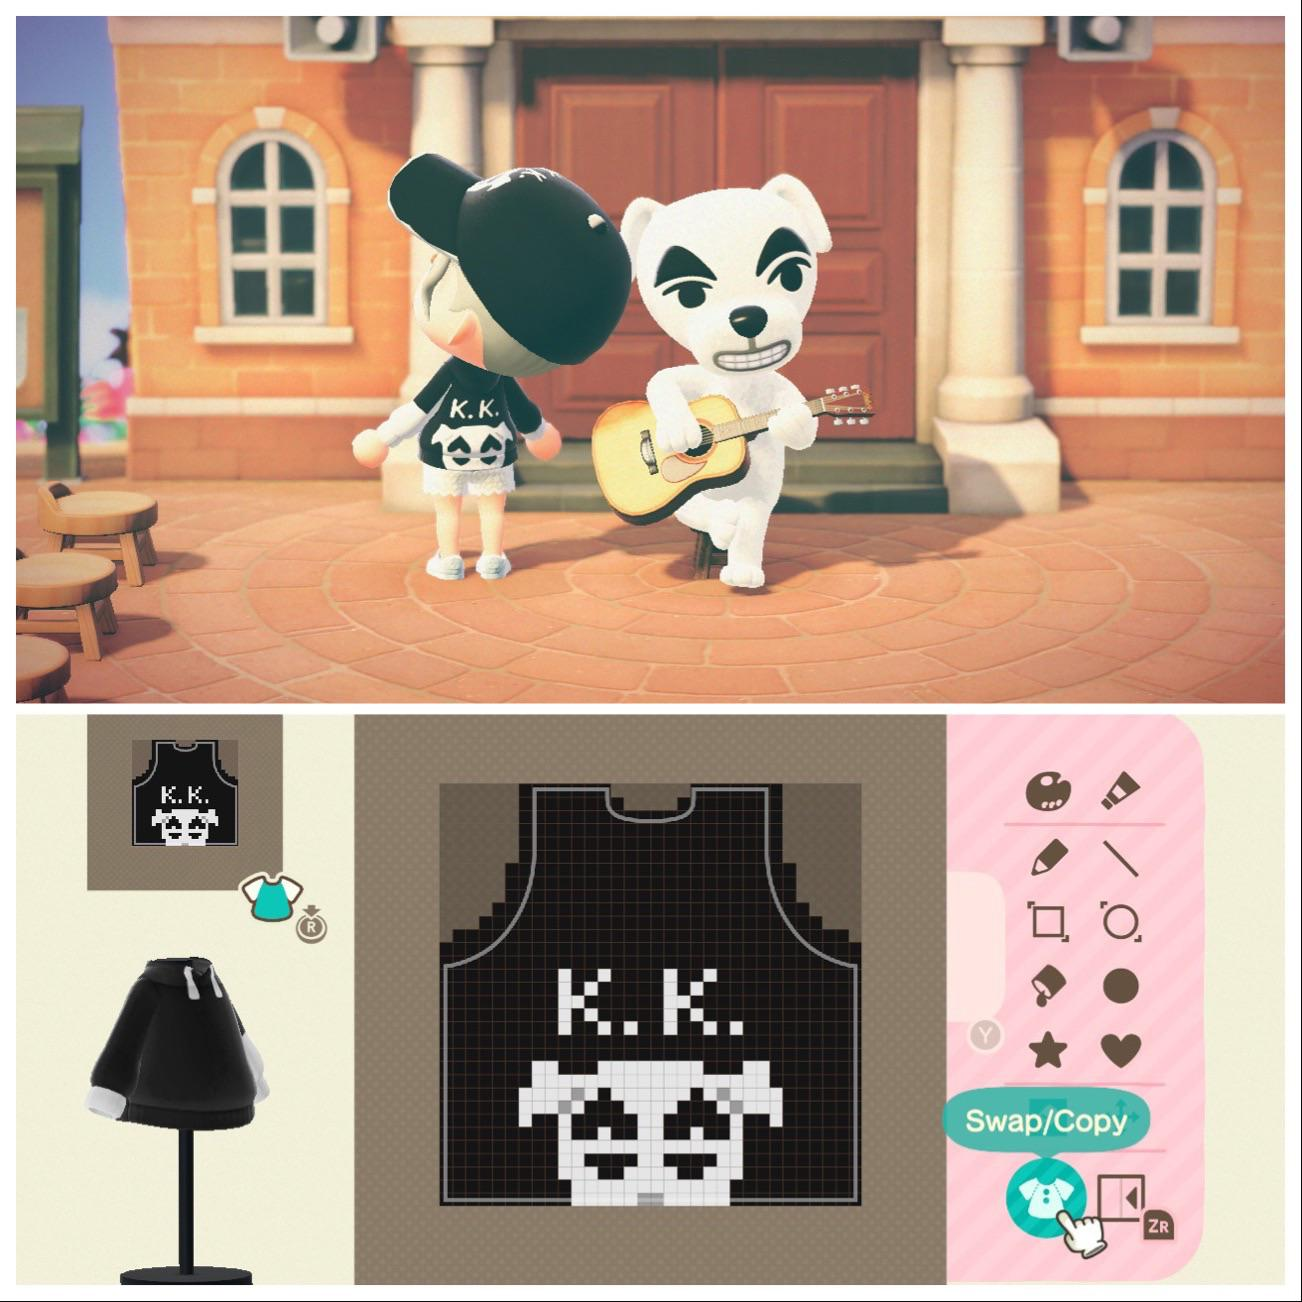 Wanted K.K. Slider merch to hang in my store (pixel grid included, code in comments)